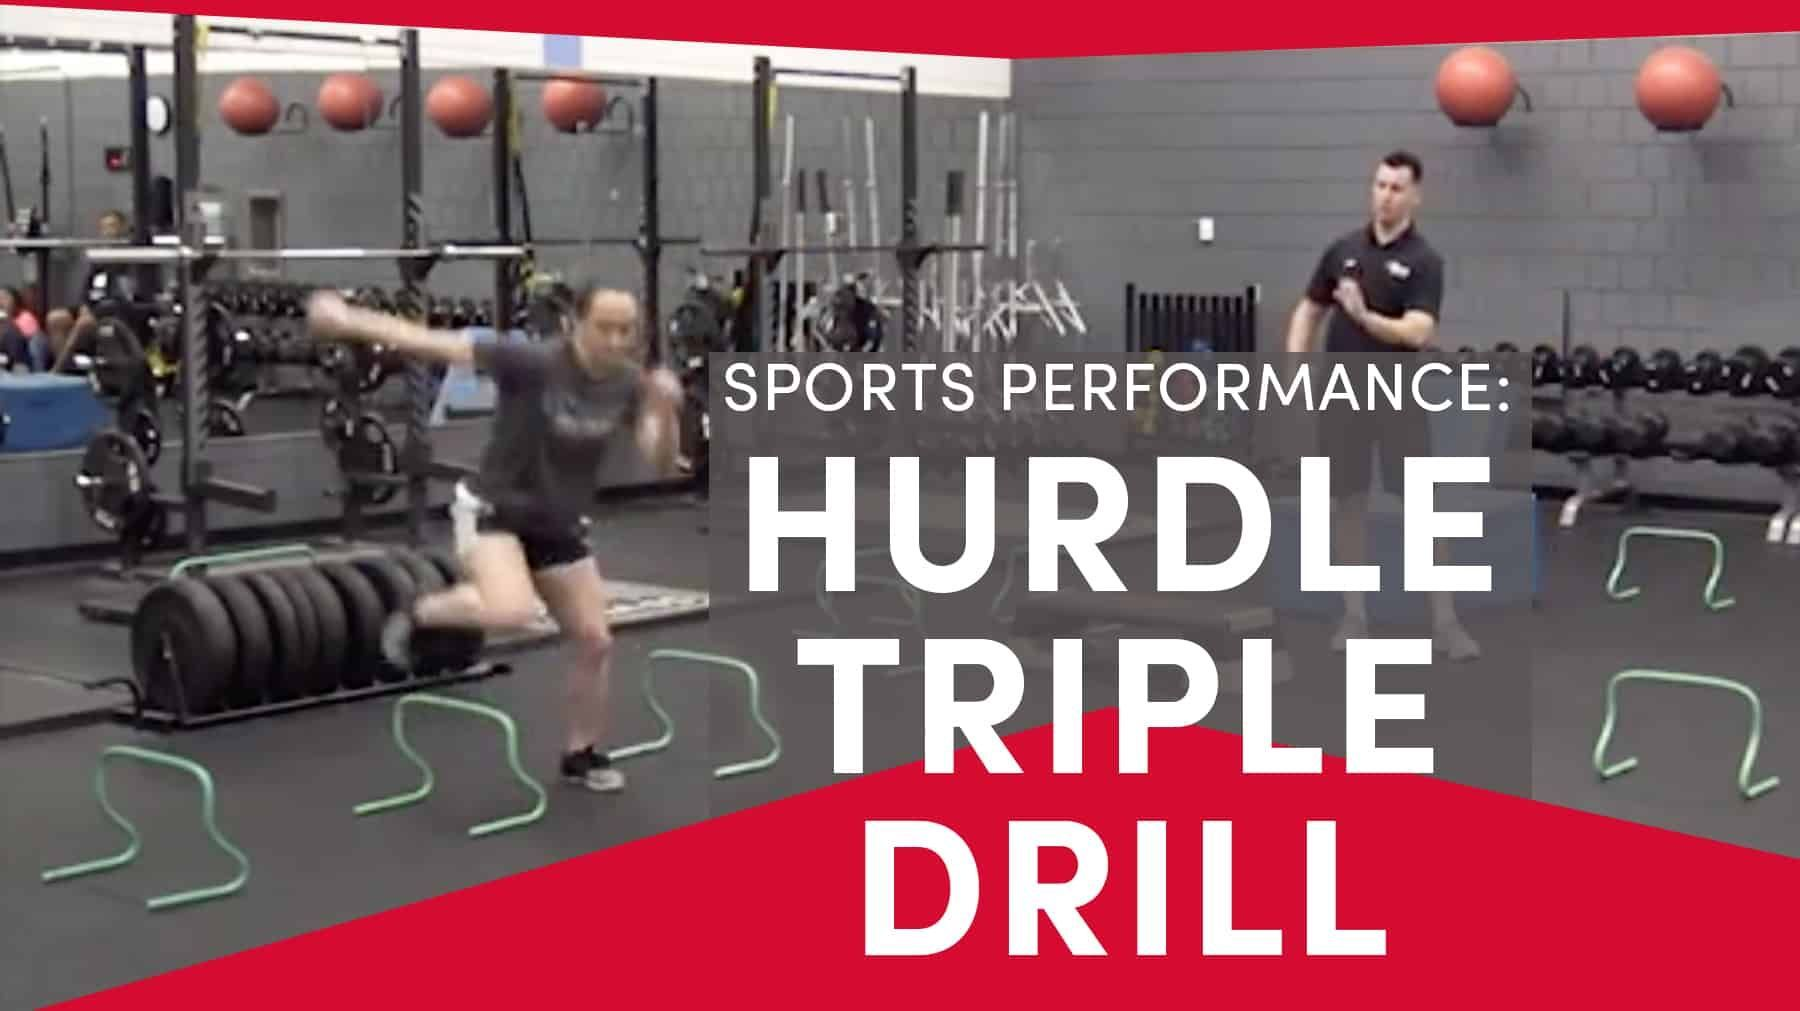 Sports Performance Hurdle Triple Drill With Images Coaching Volleyball Sport Performance Volleyball Conditioning